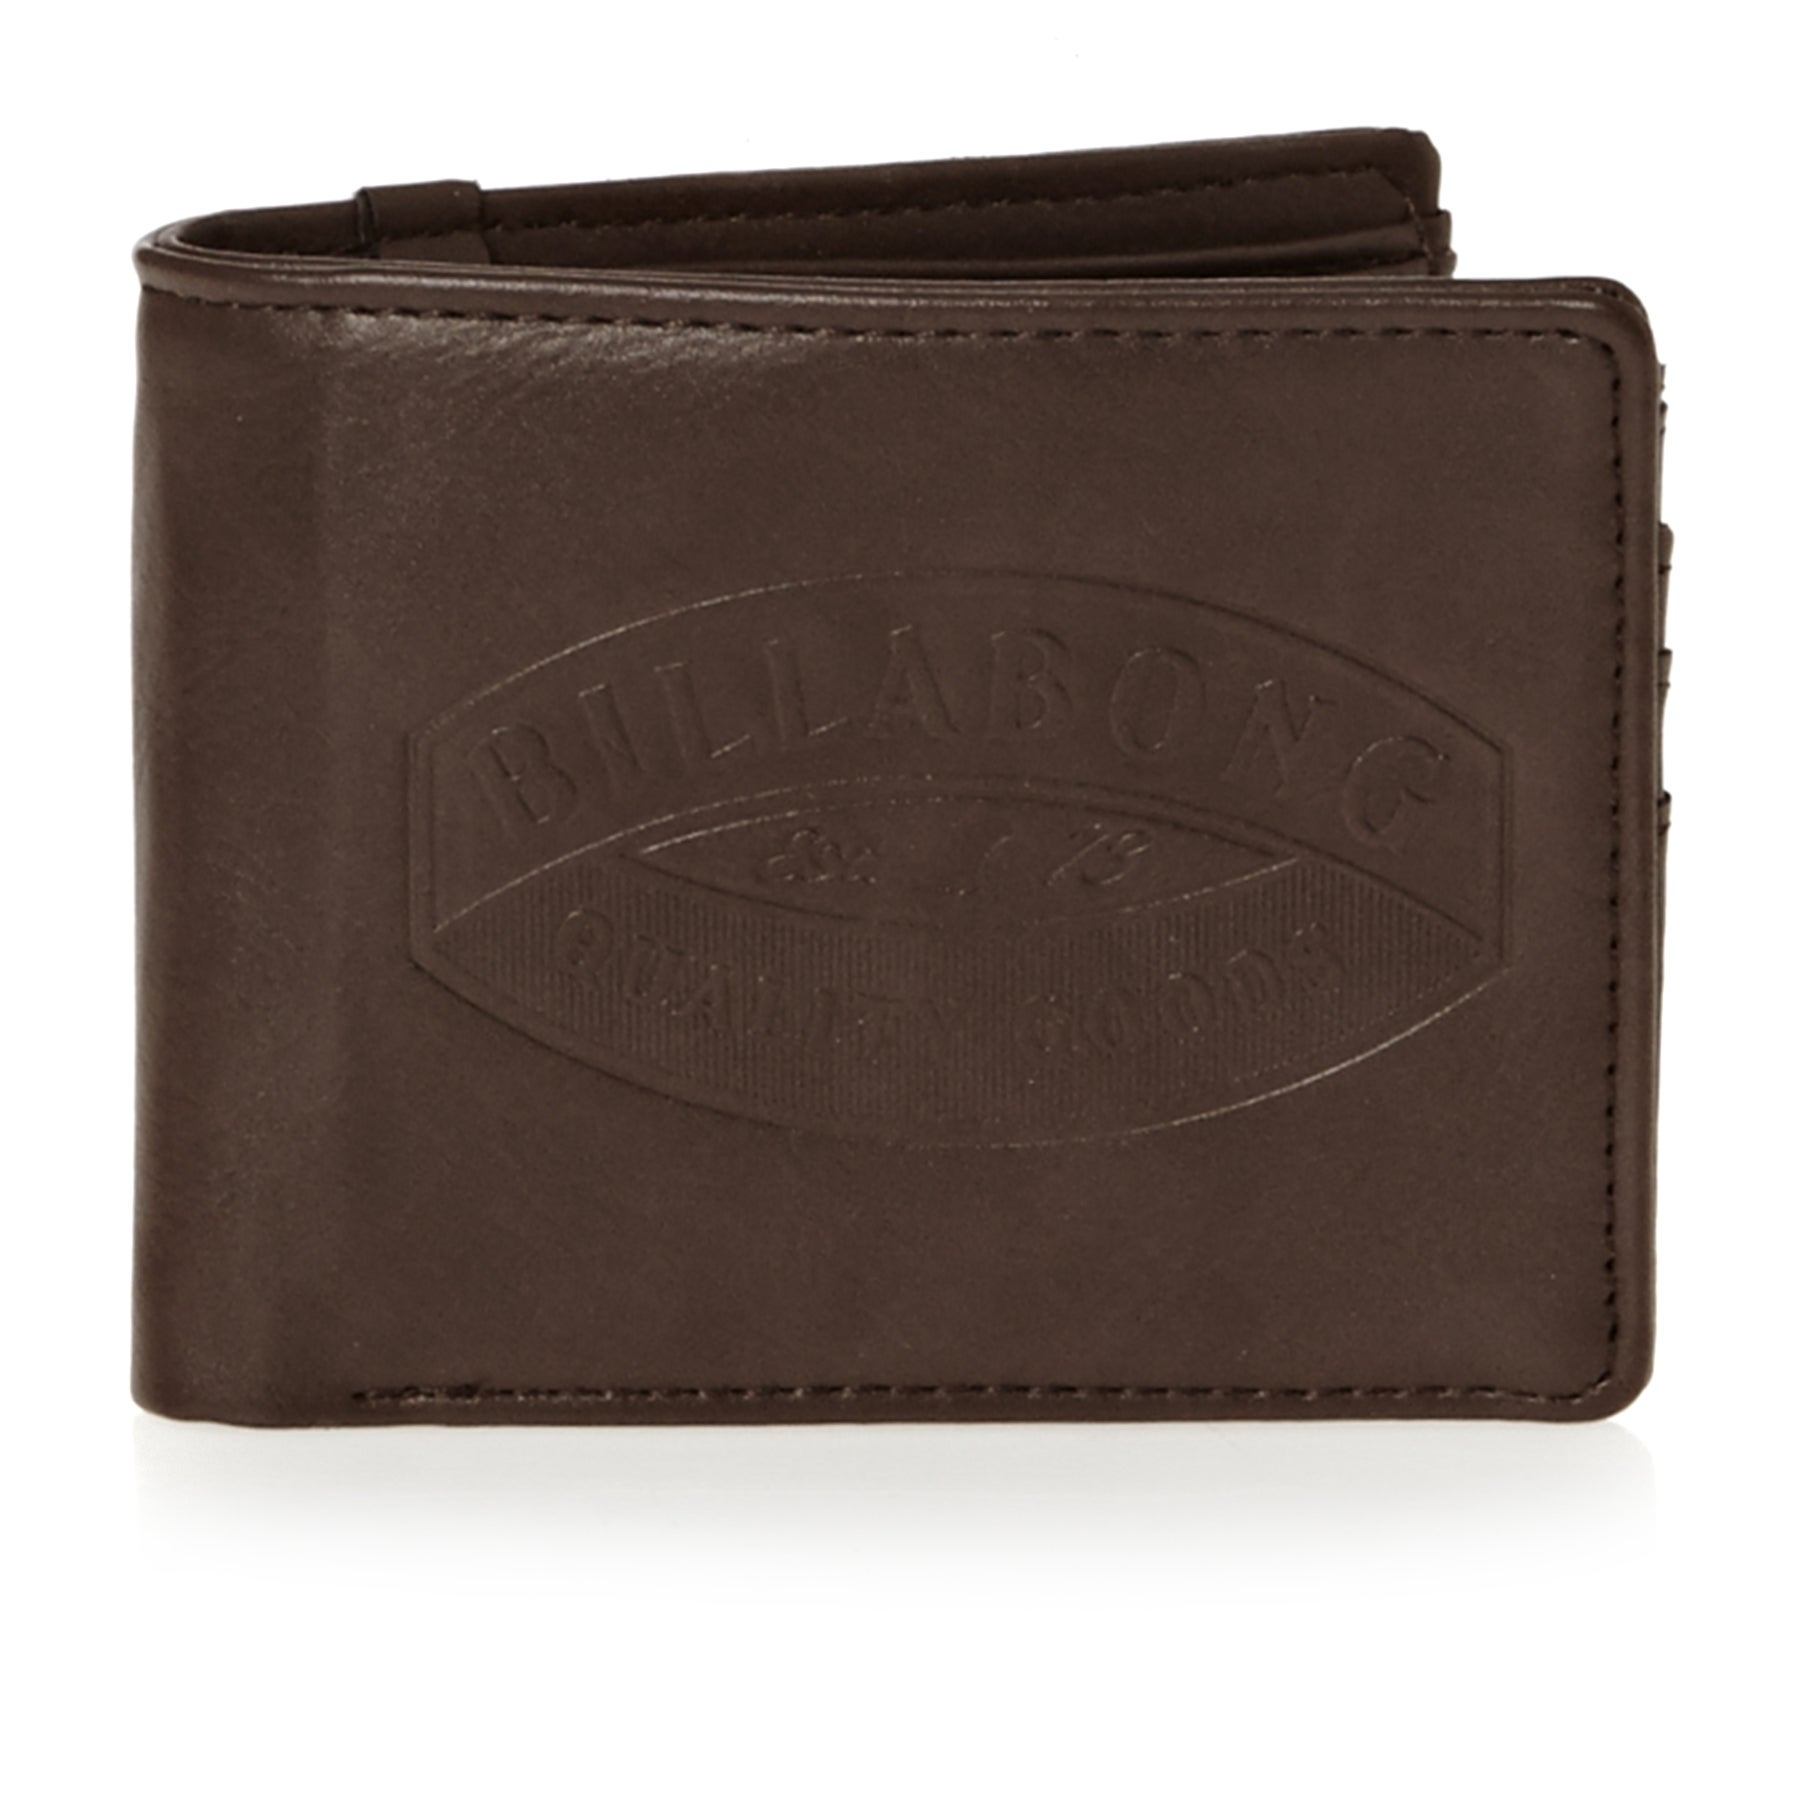 Billabong Junction Wallet - Chocolate